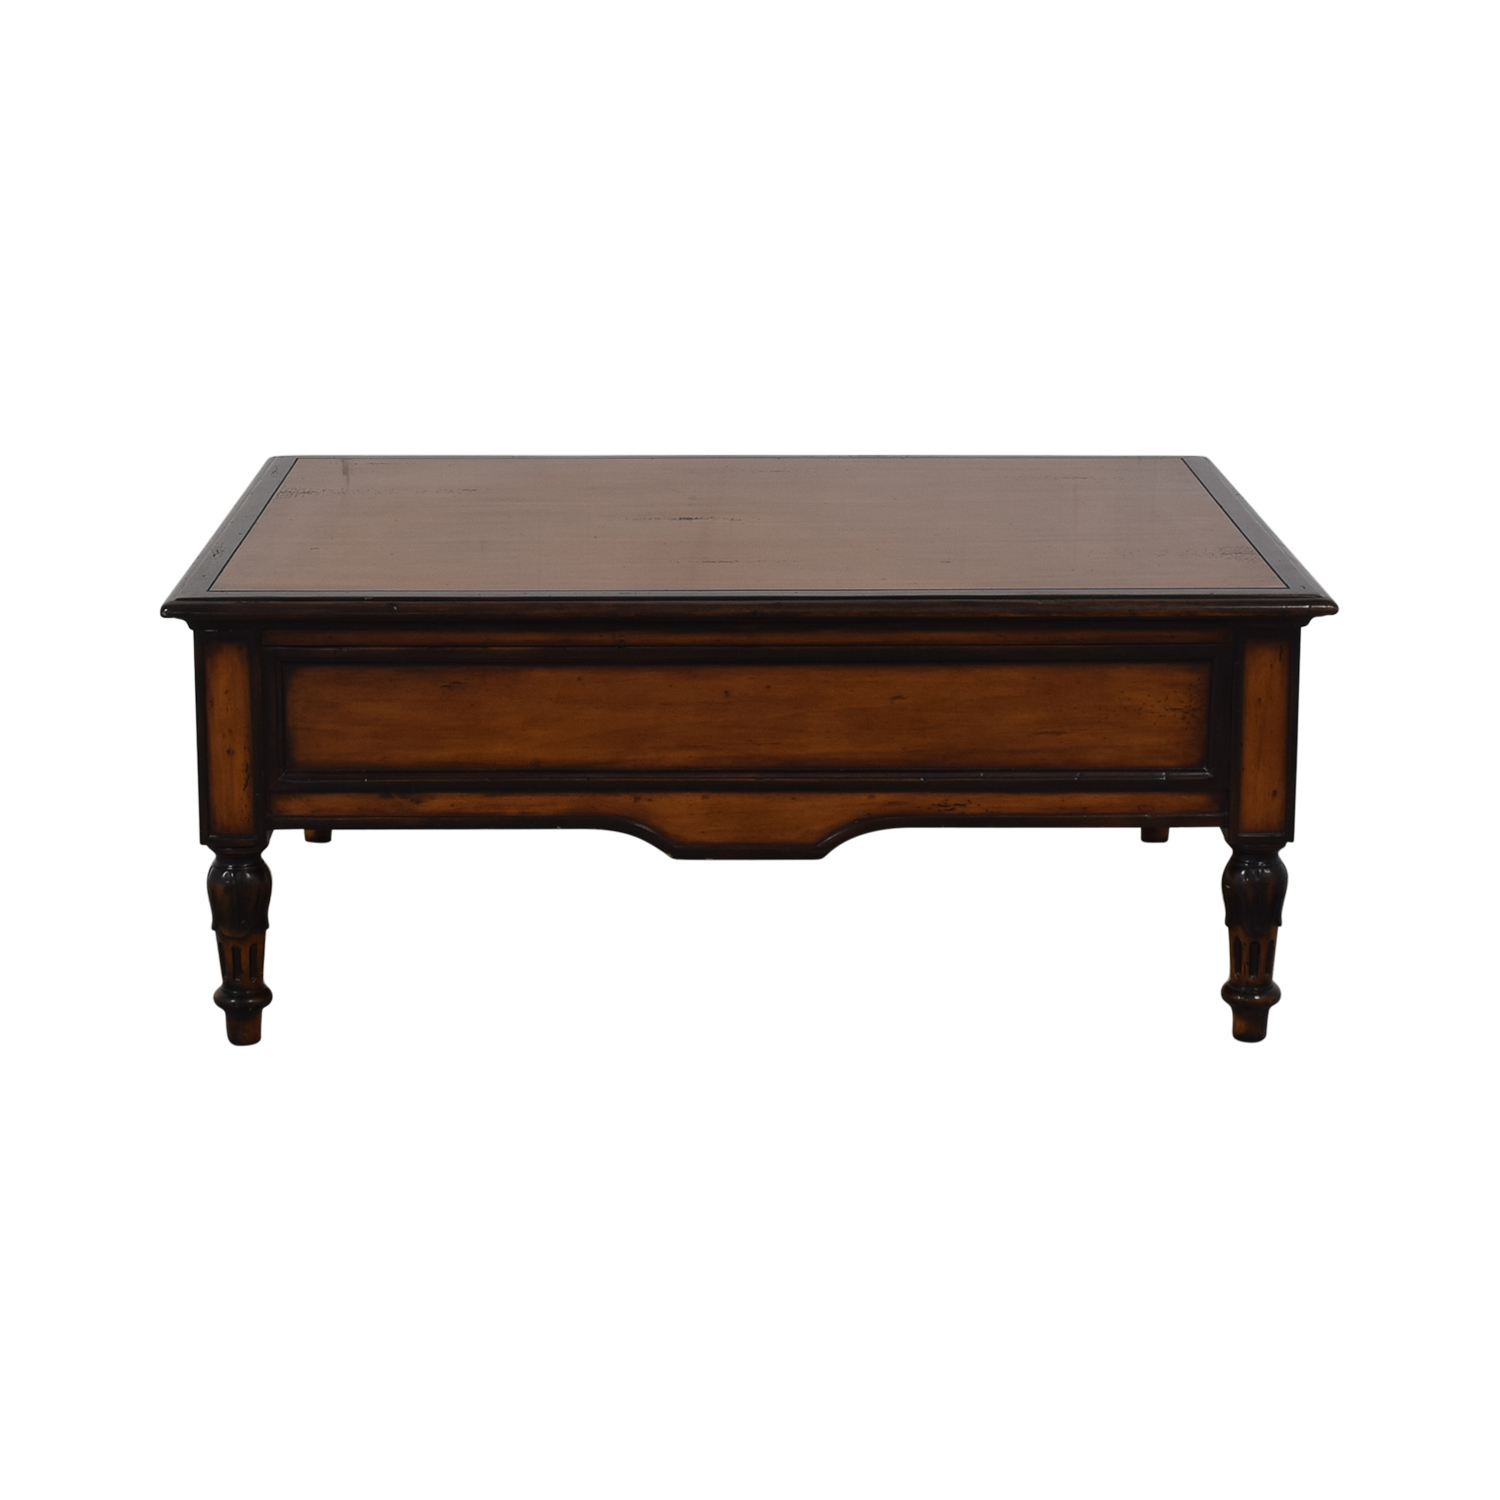 buy Theodore Alexander Theodore Alexander Chateau du Vallois Coffee Table online